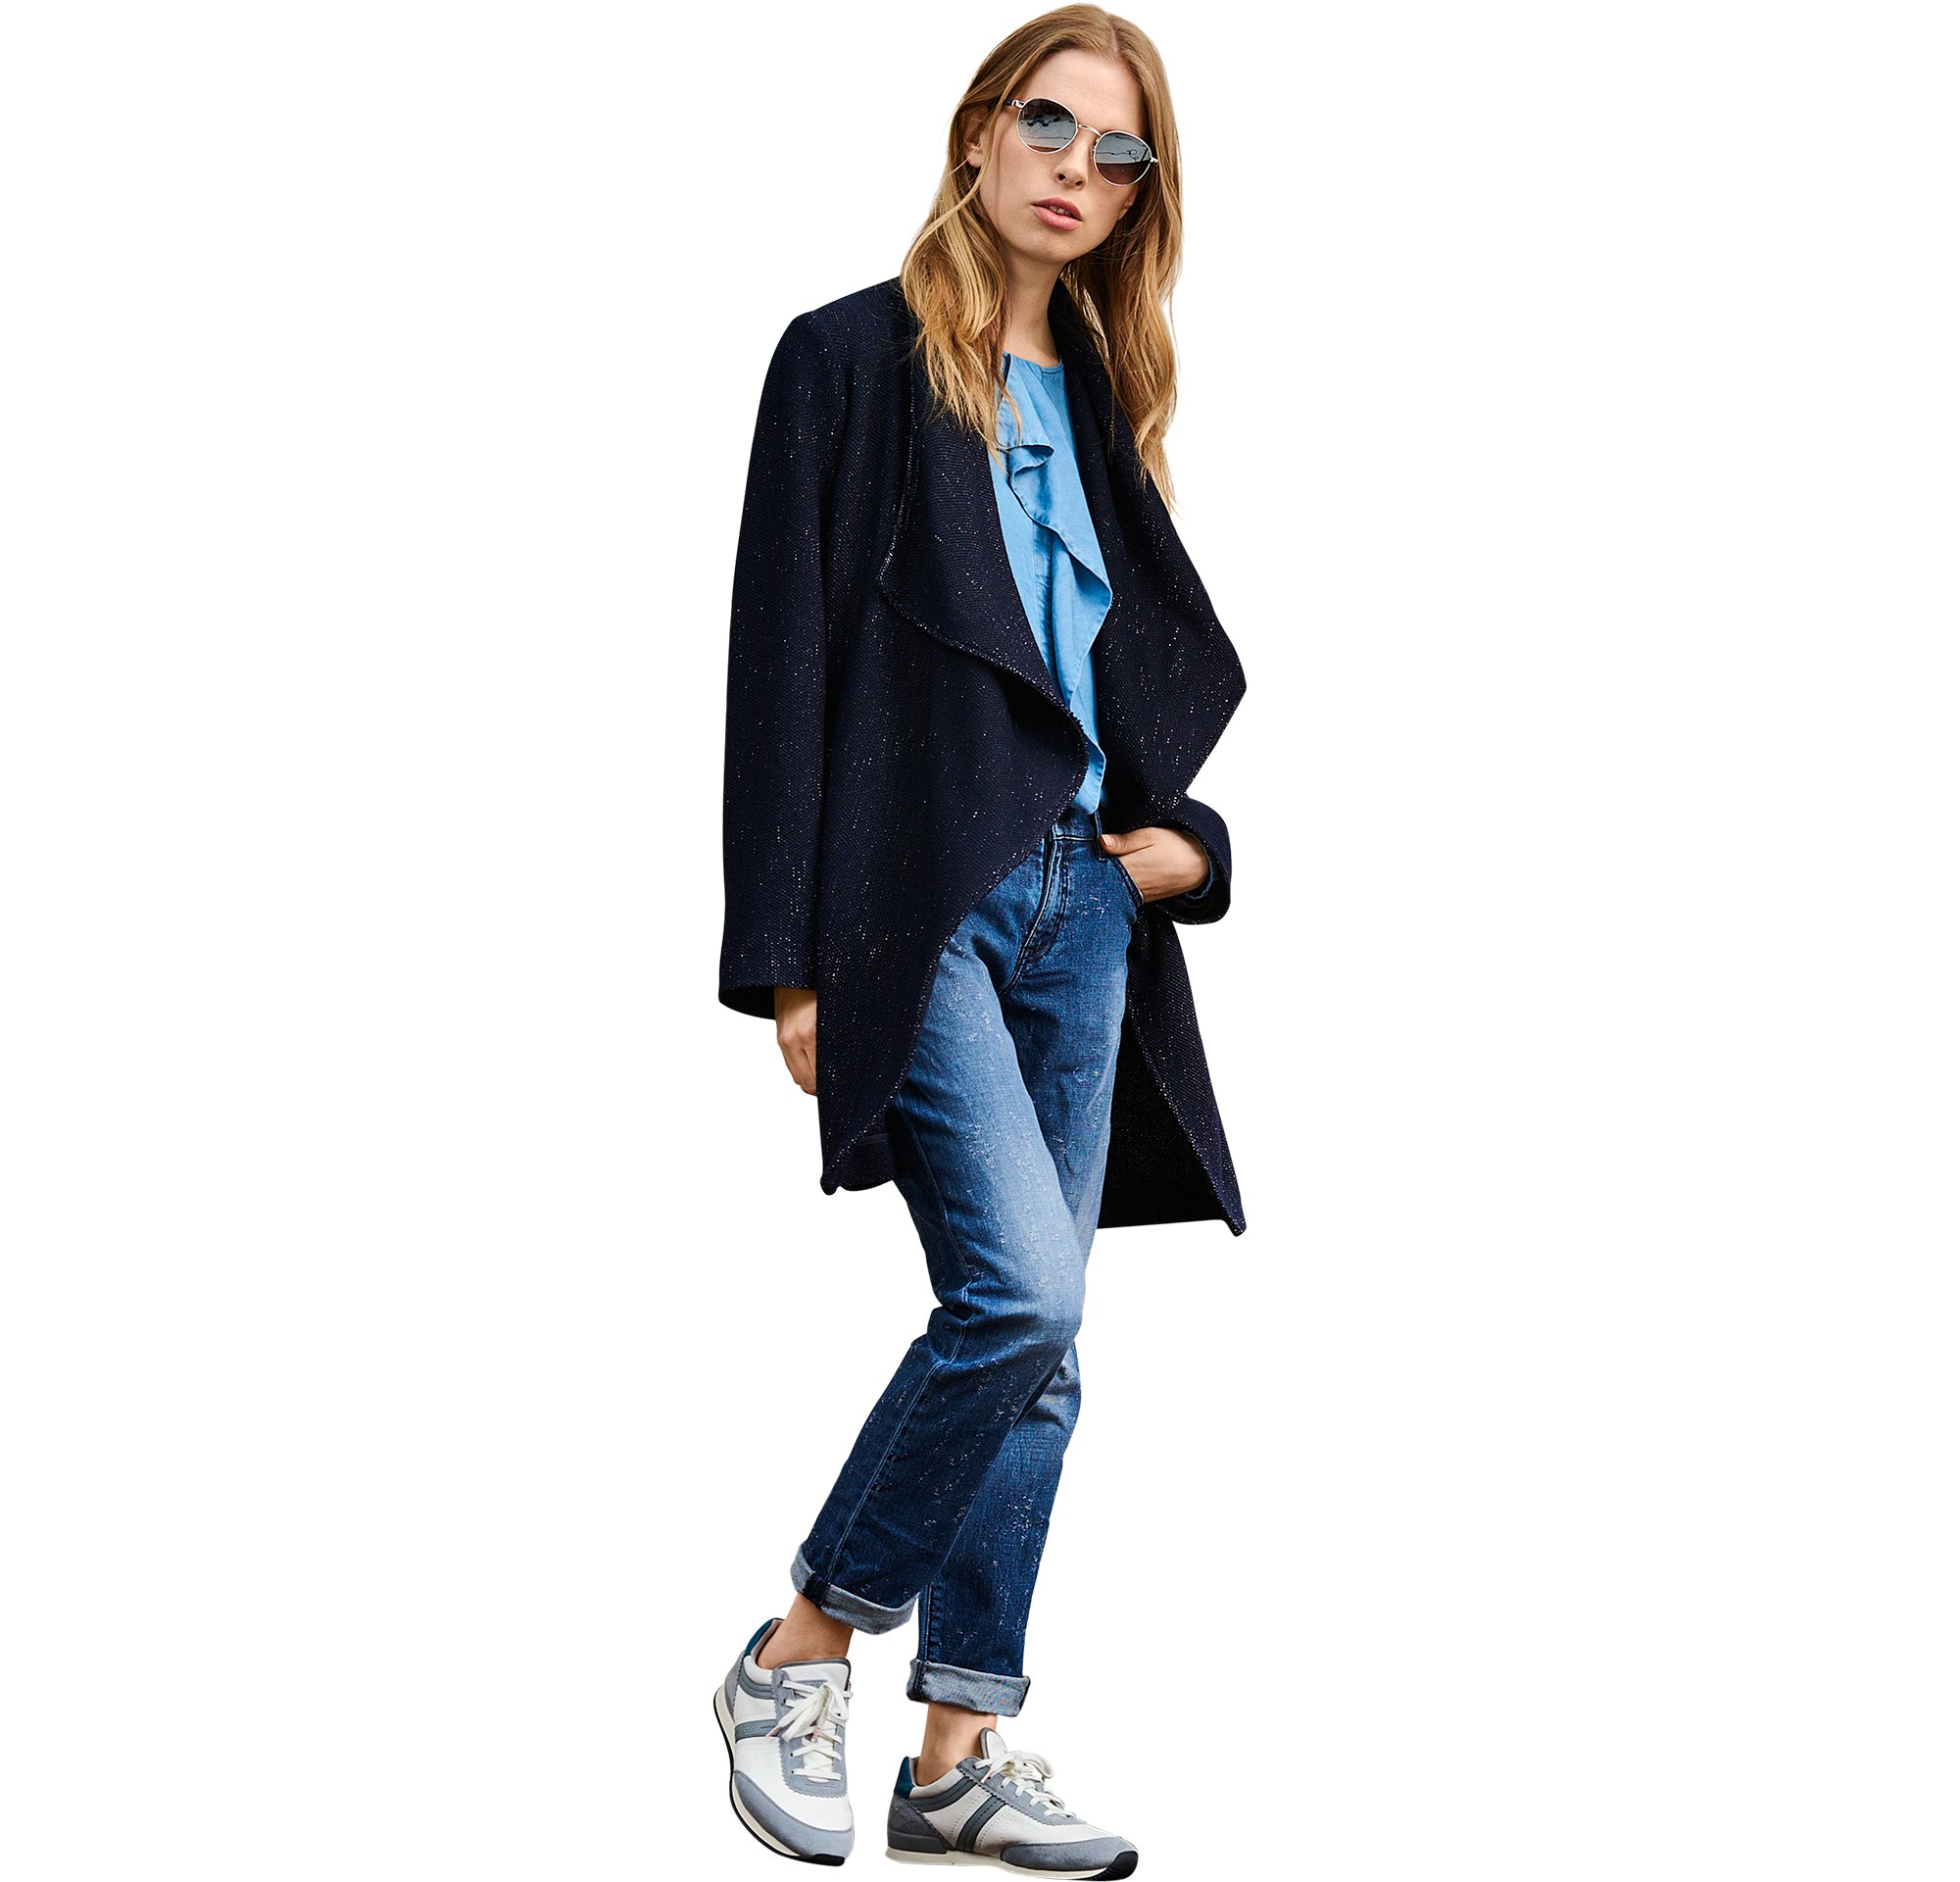 Blue coat over blouse and jeans by BOSS Orange